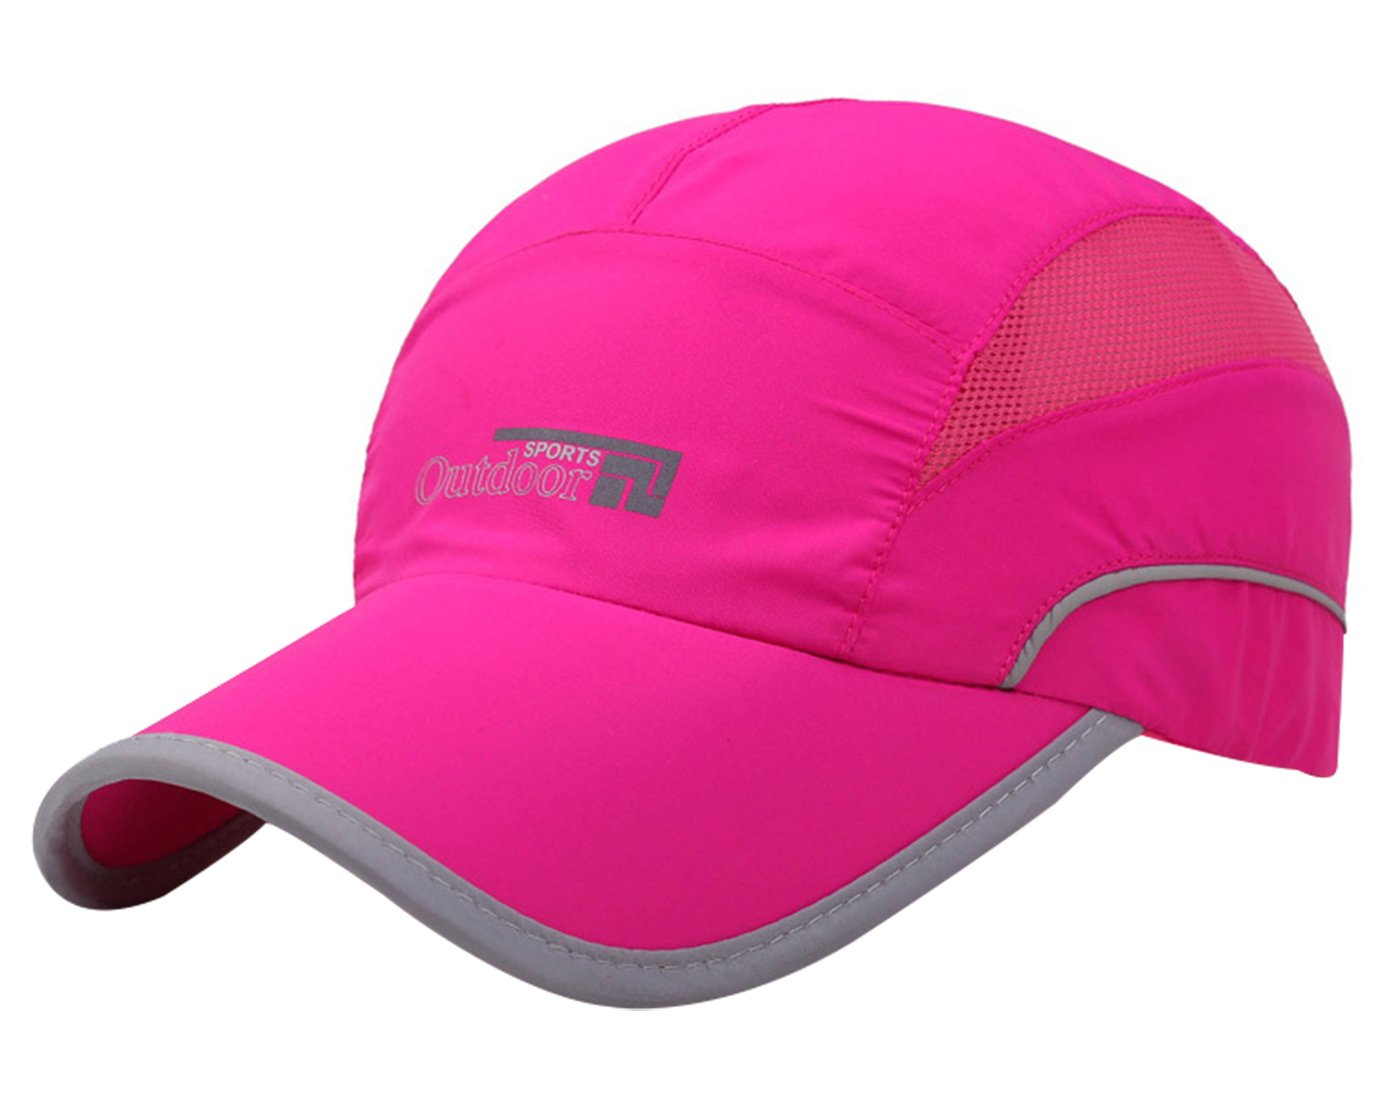 Aivtalk Baseball Cap Quick Dry Sun Hats UPF50+ Cooling Portable Travel Hats for Sports Golf Running Fishing Outdoor Research with Foldable Long Large Bill Rose